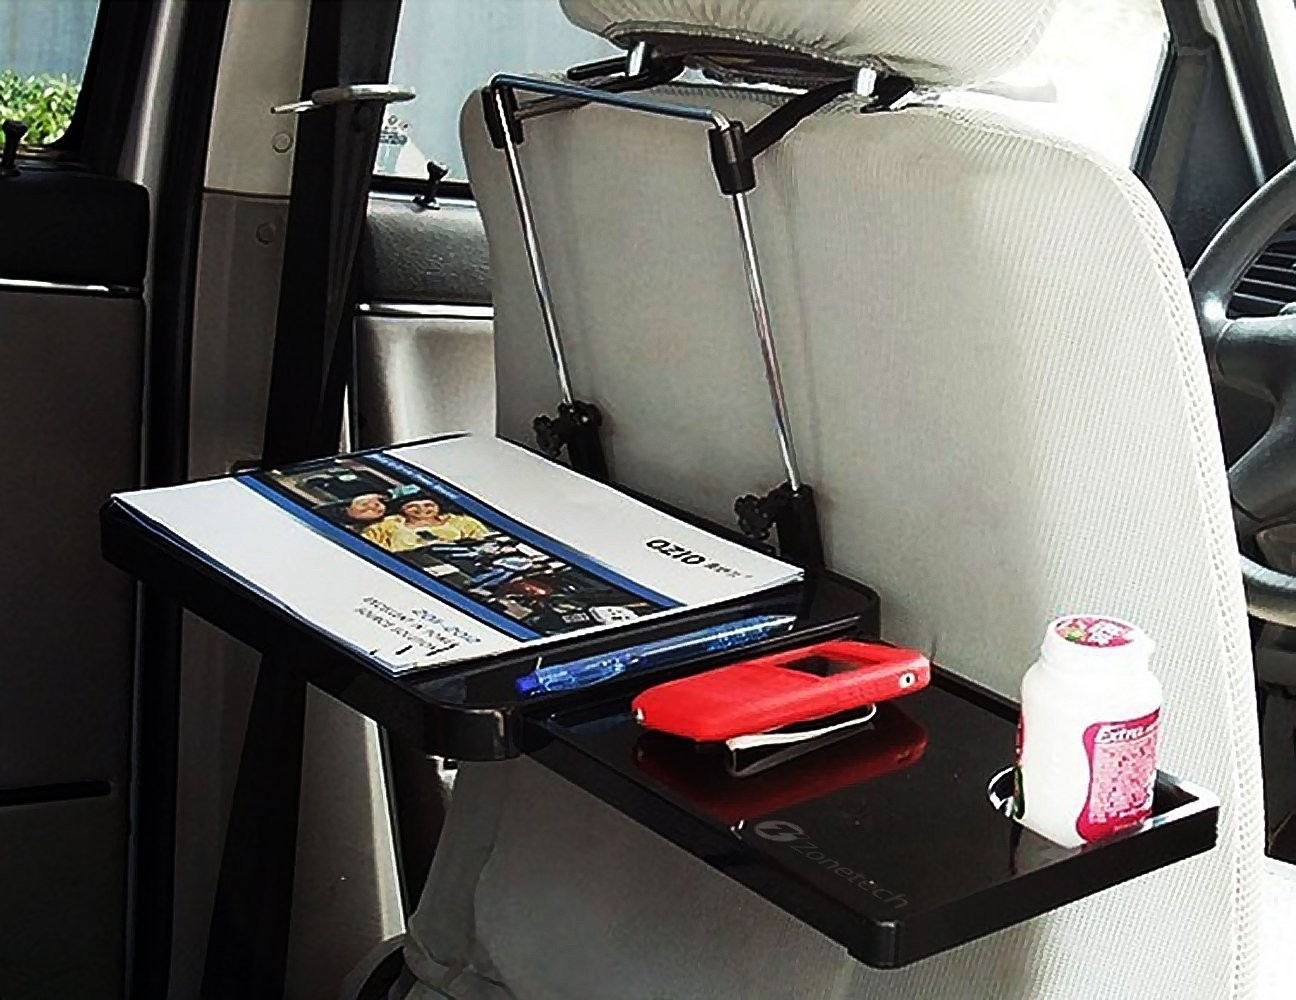 Auto Accessories  Headlight bulbs  Car Gifts Black Steering Wheel and Back Seat Tray With